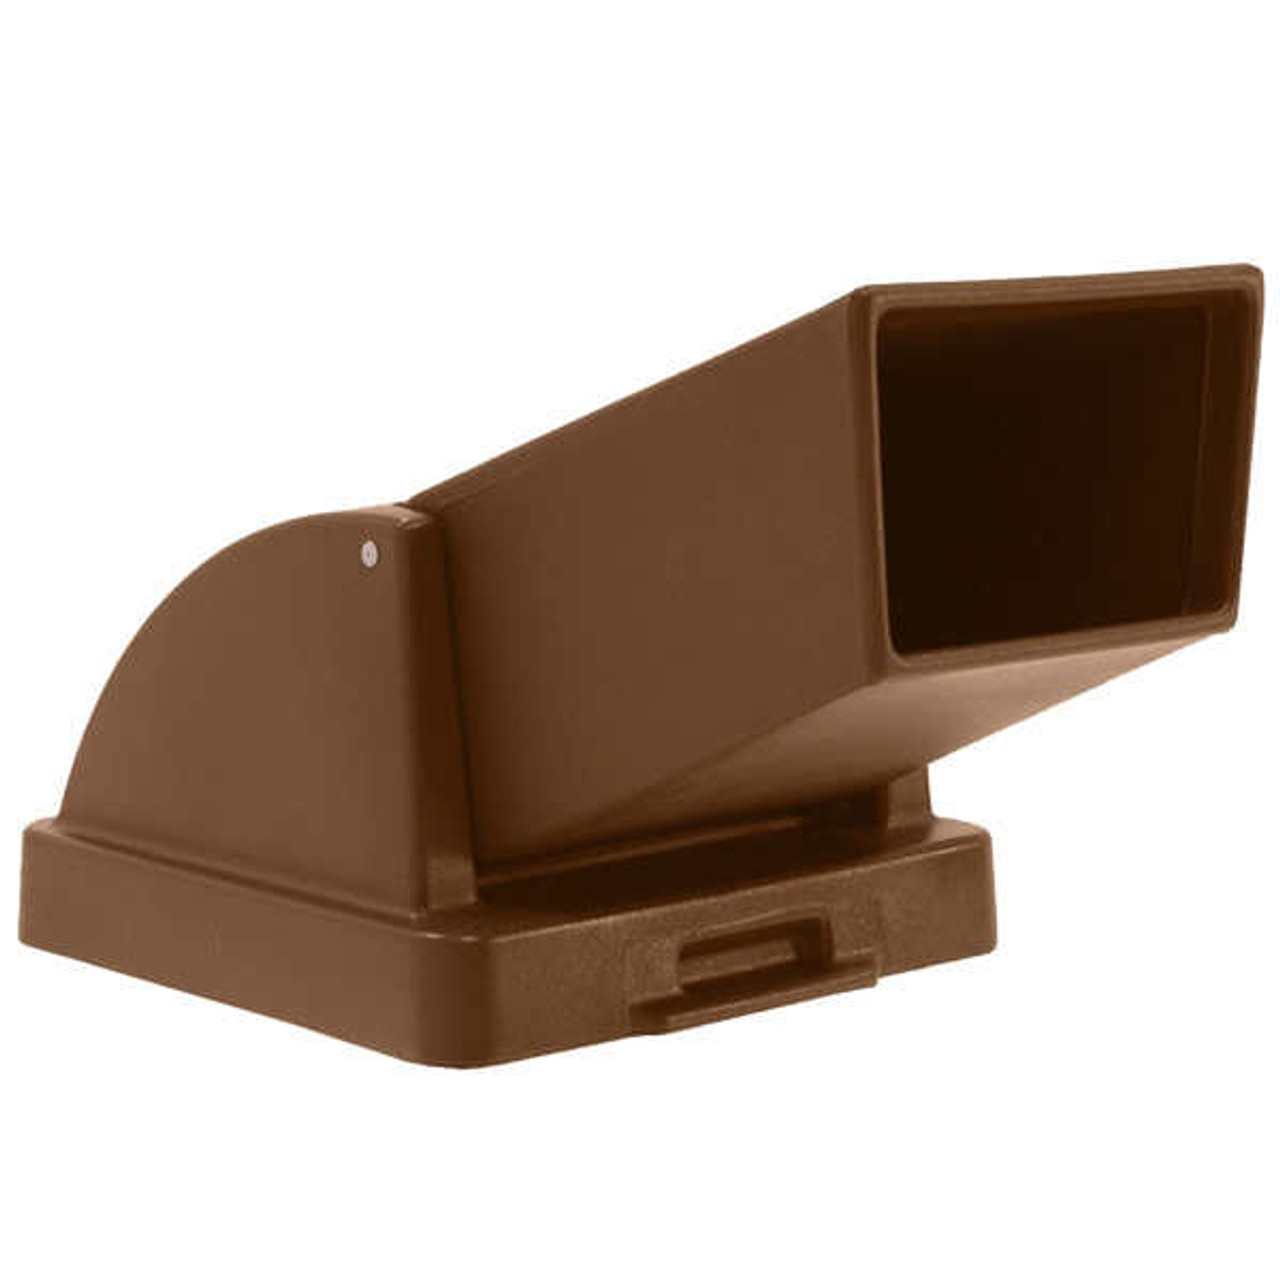 20.5 x 20.5 Drive Up Lid TF1401/TF1416 for Concrete Trash Cans Square (BROWN)